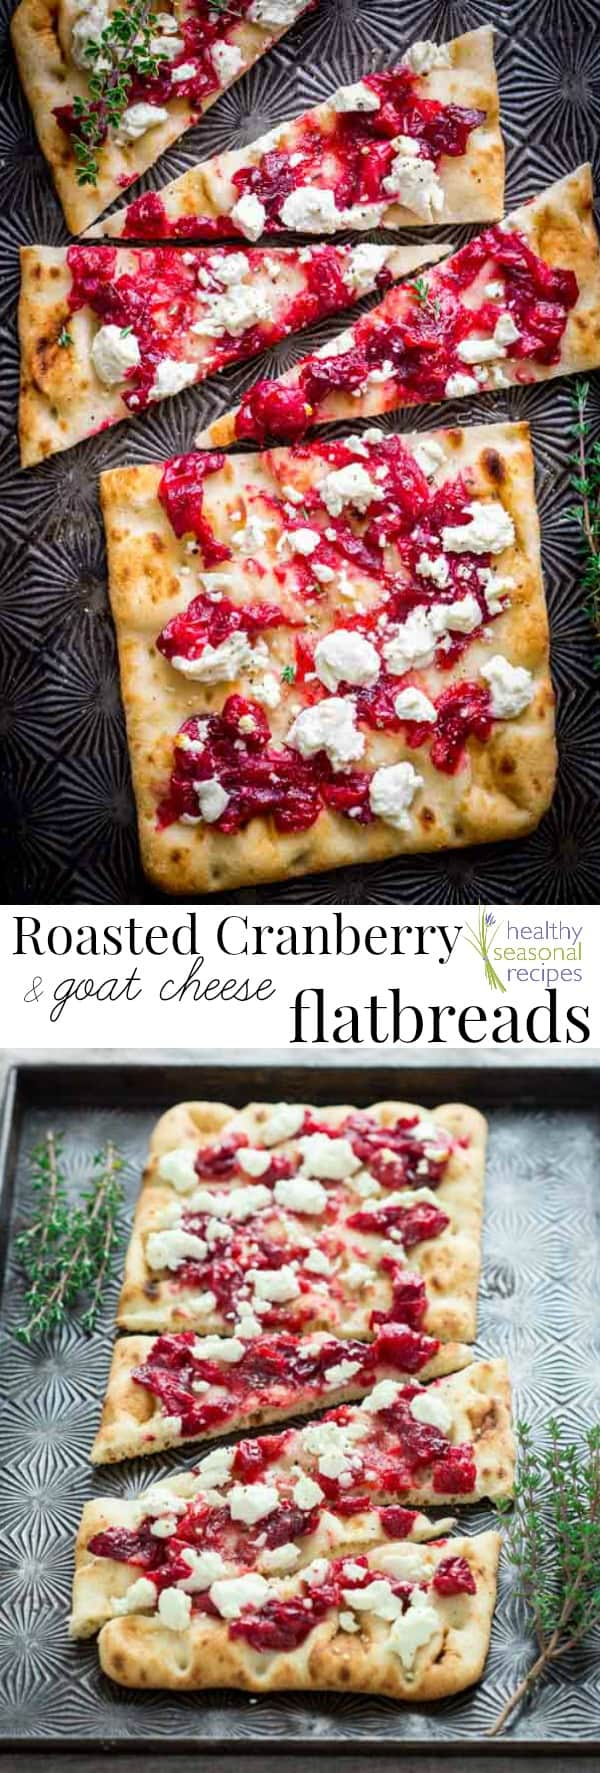 Mix up your holiday party with this festive appetizer recipe: Roasted Cranberry Flatbreads, made with store-bought pizza crust and cranberries roasted with maple syrup, shallot and thyme. They are savory and sweet and topped with crumbled goat cheese! #party #holiday #Christmas #appetizer #horsdoeuvres #tapas #cranberry #pizza